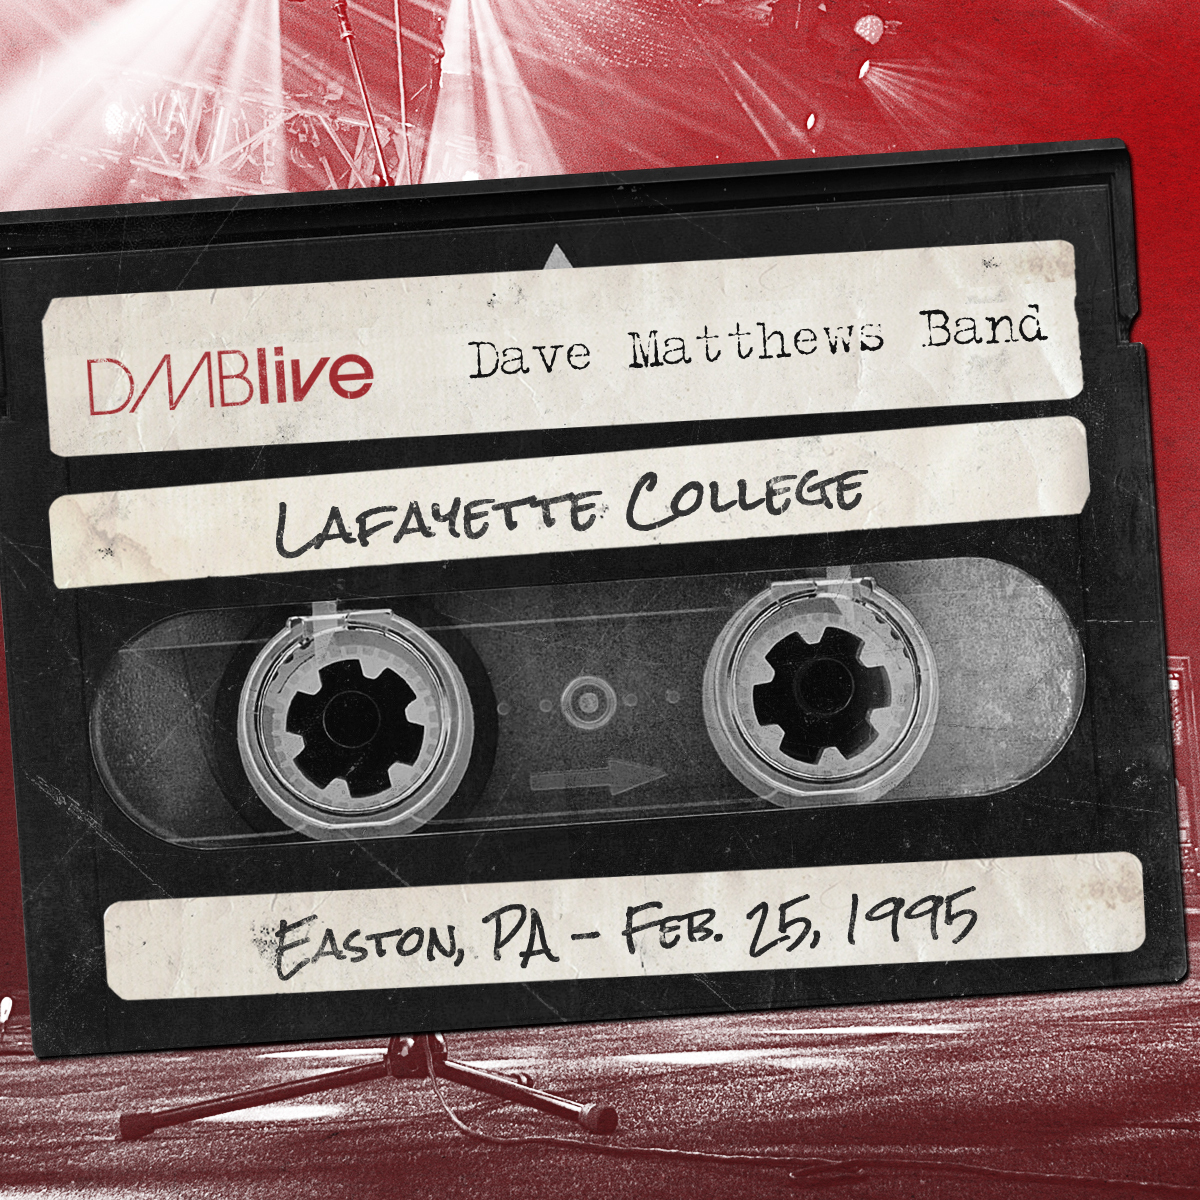 DMB Lafayette College, Easton, PA 2/25/1995